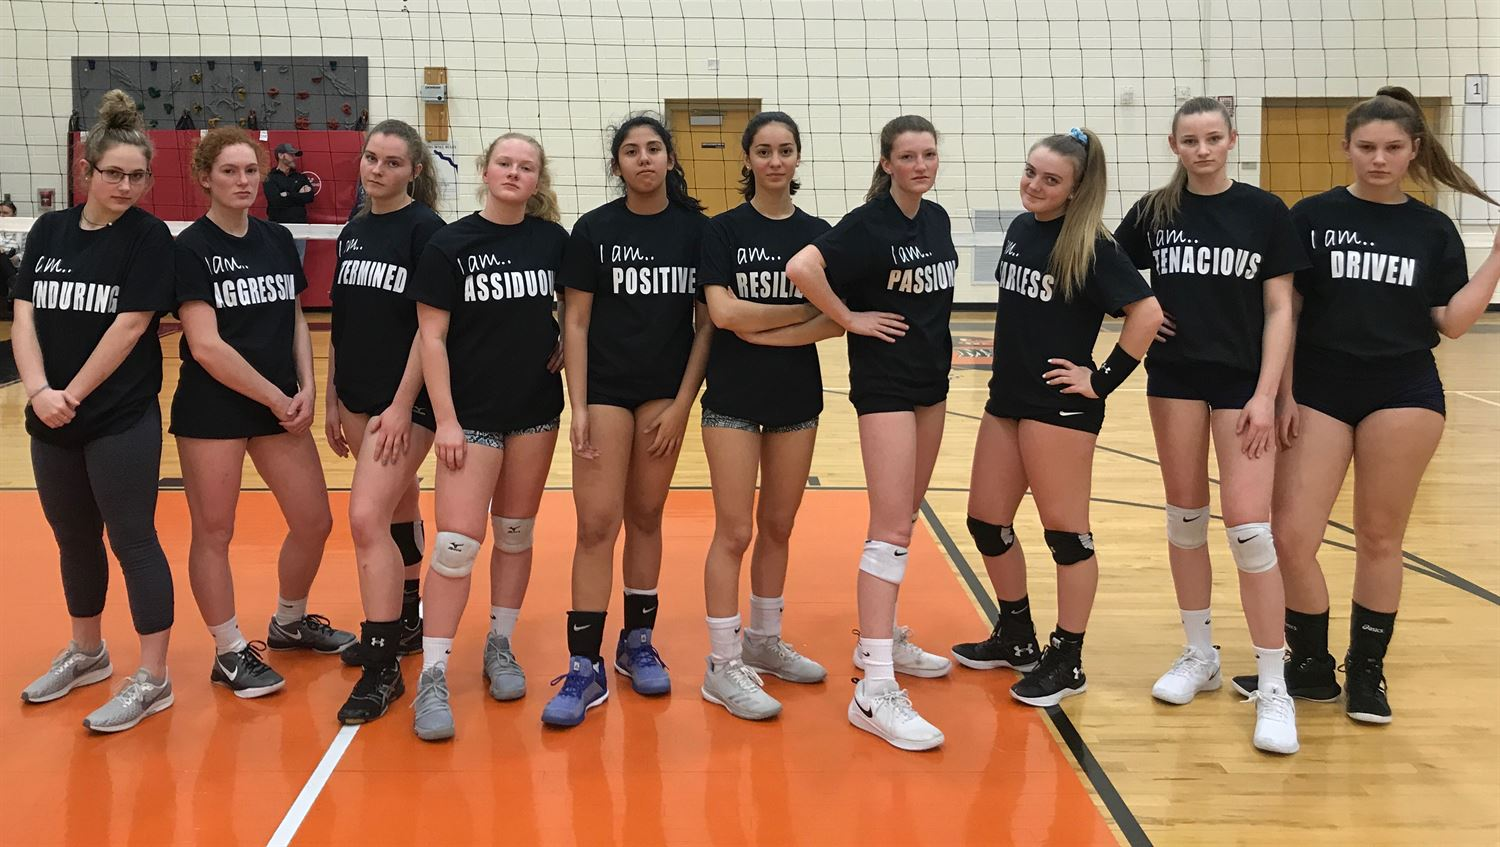 Liberty 15 Travel Liberty Elite Volleyball Club Fairplay Maryland Volleyball Hudl